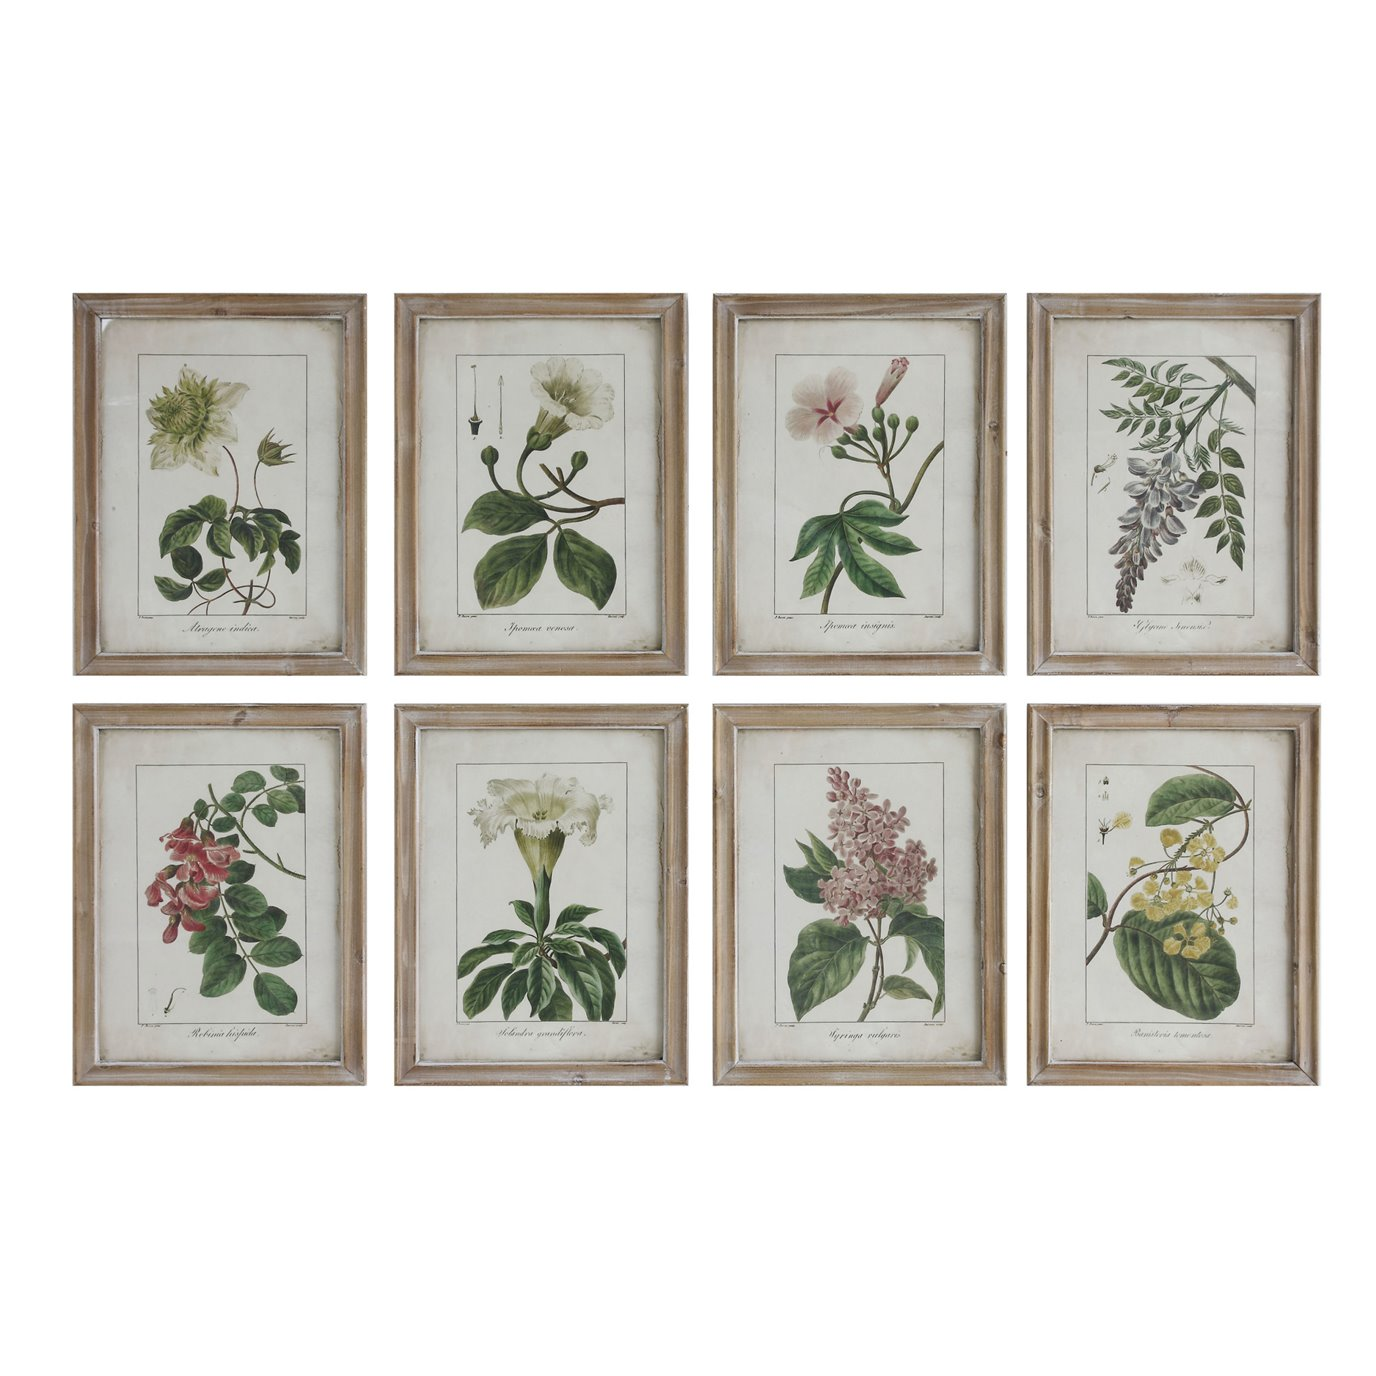 Wood Framed Wall Décor with Floral Image Reproductions (Set of 8 Designs)